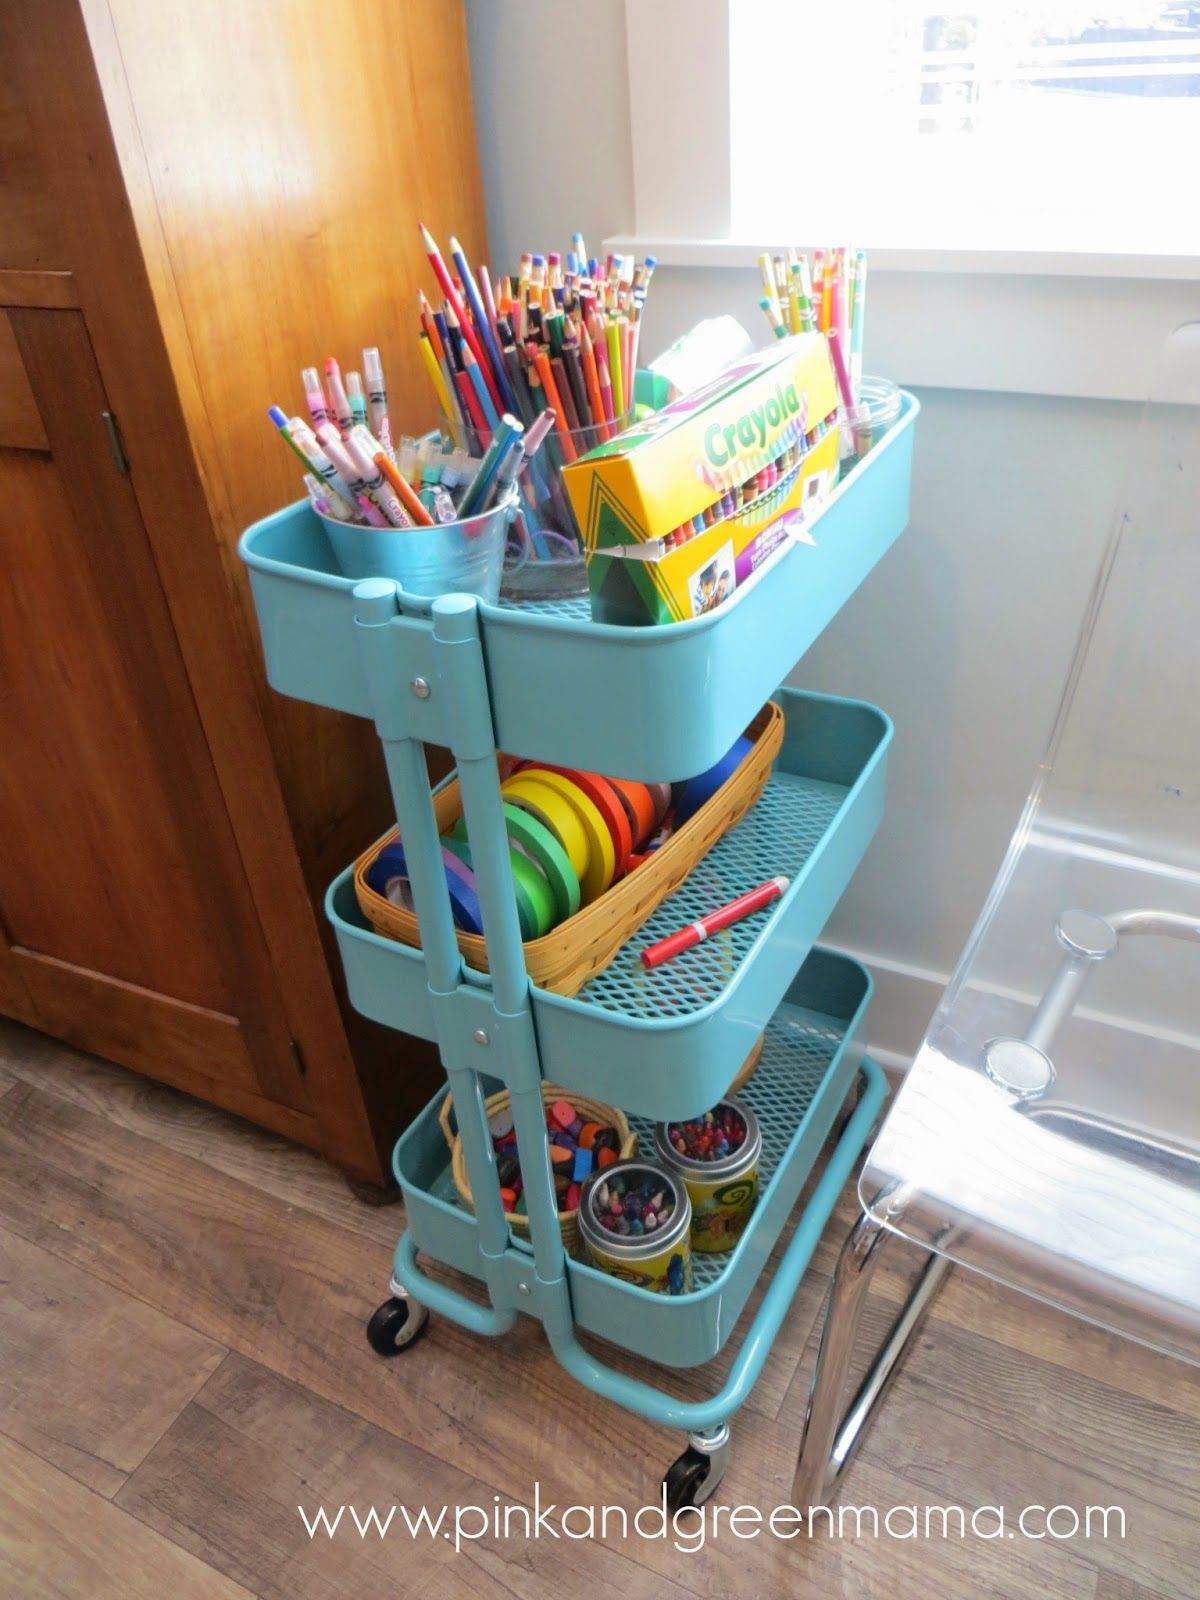 This IKEA cart makes for the perfect art craft cart Kids